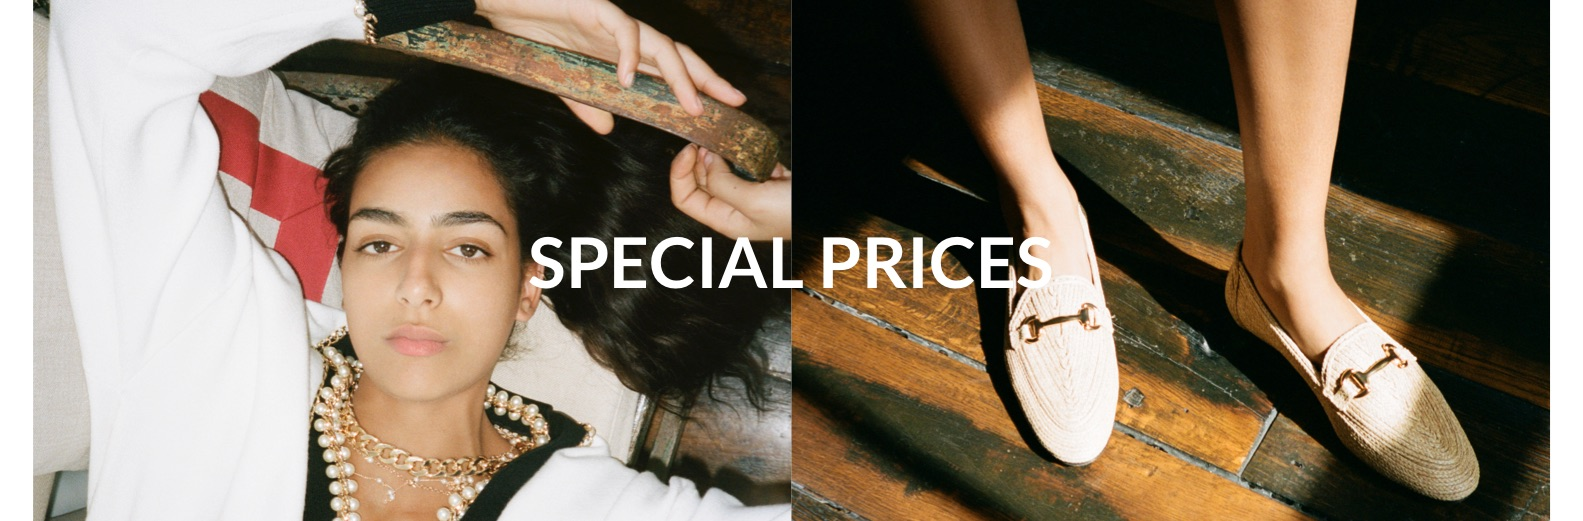 Special Prices